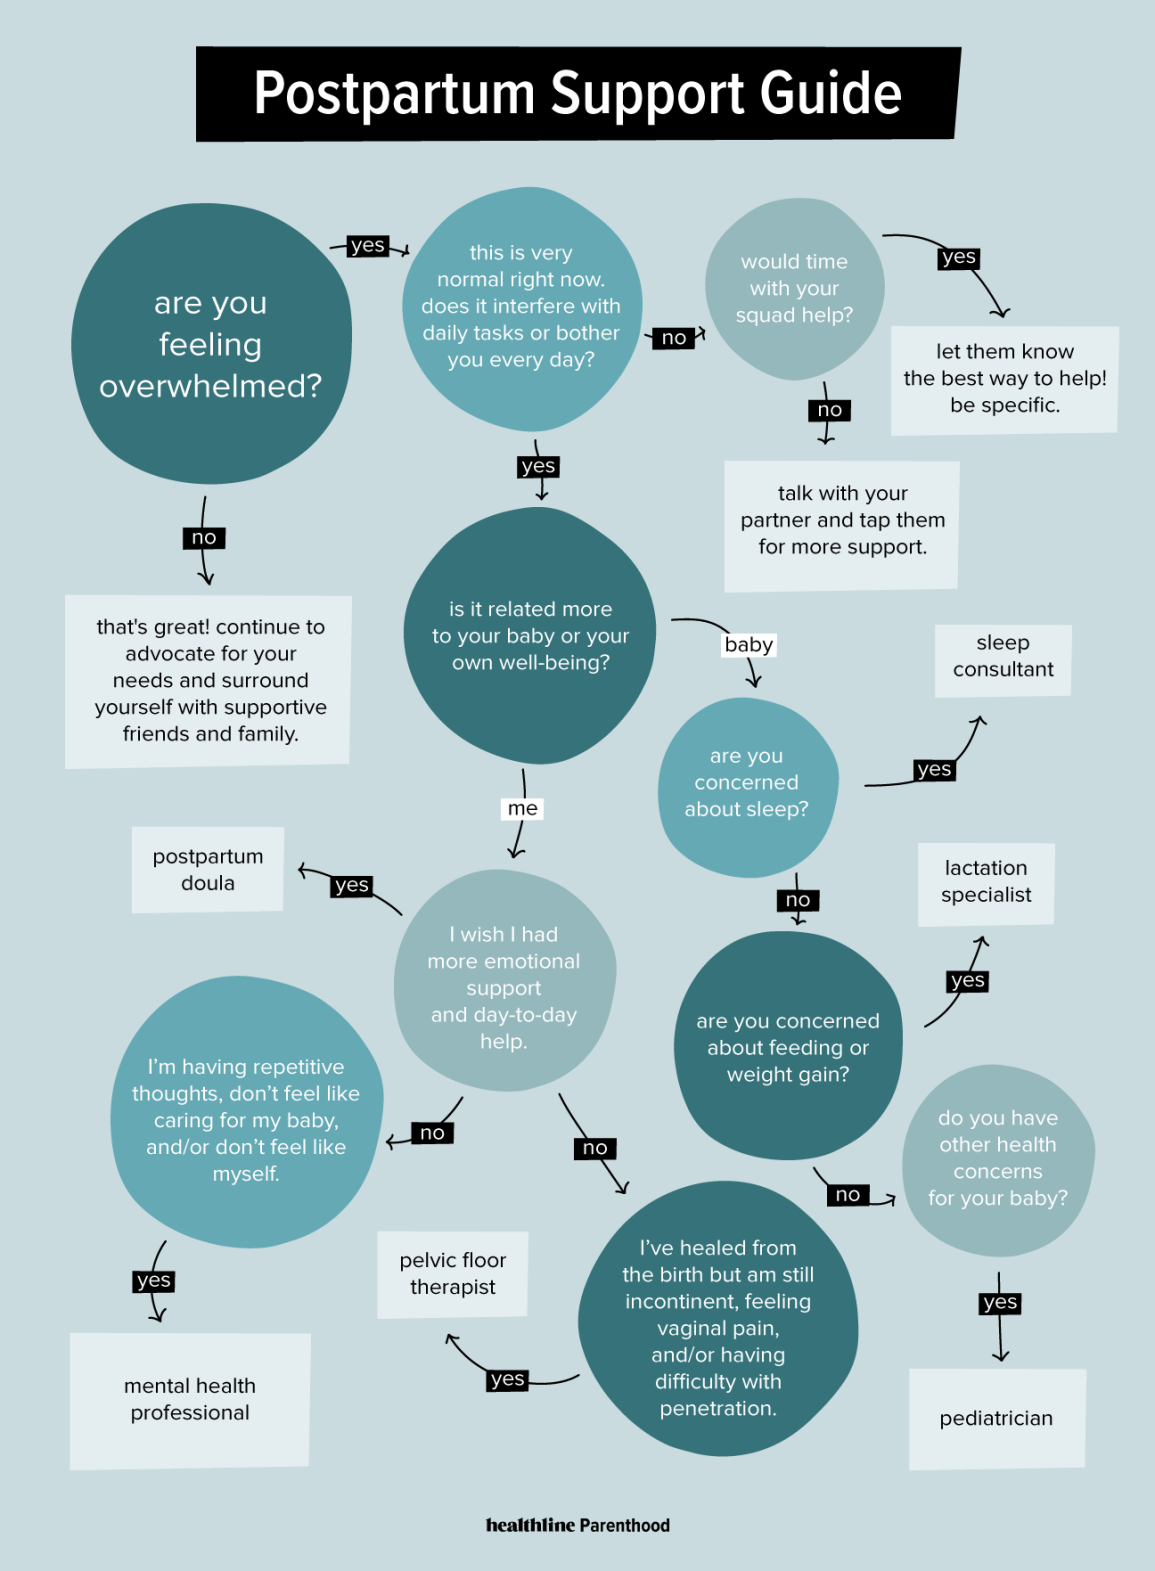 flowchart for postpartum support guide